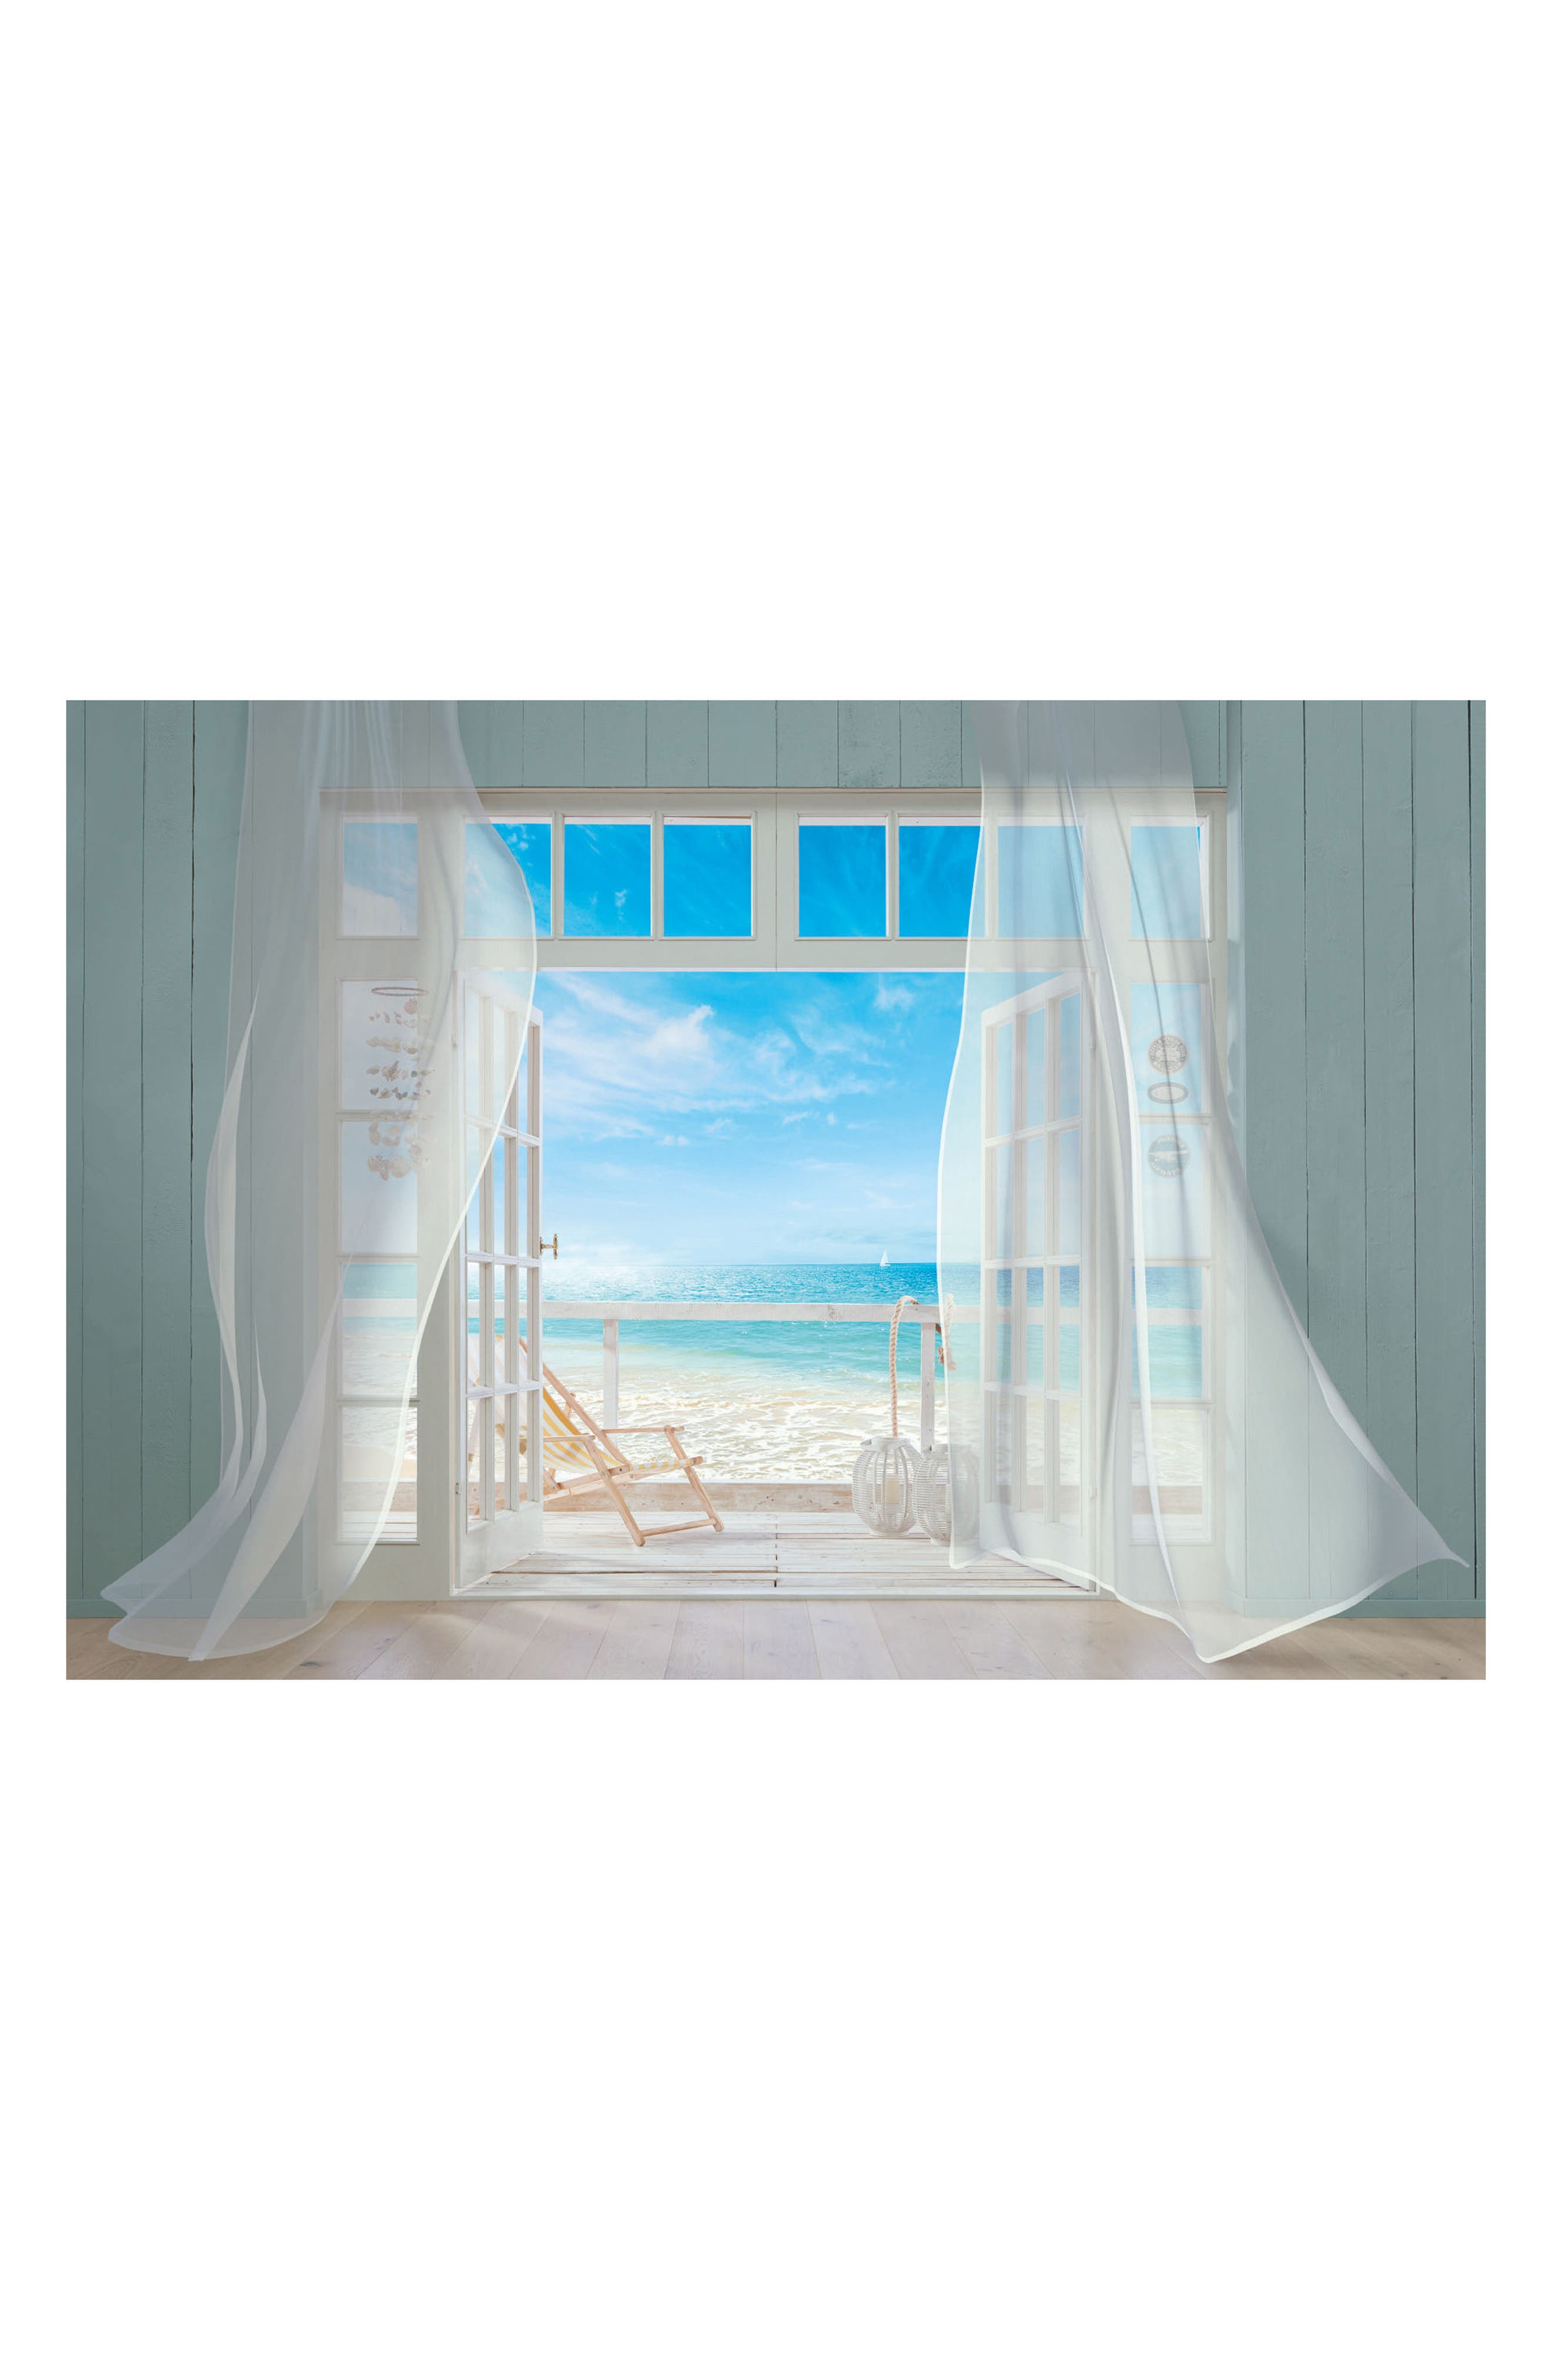 Main Image - Wallpops Malibu 8-Panel Wall Mural